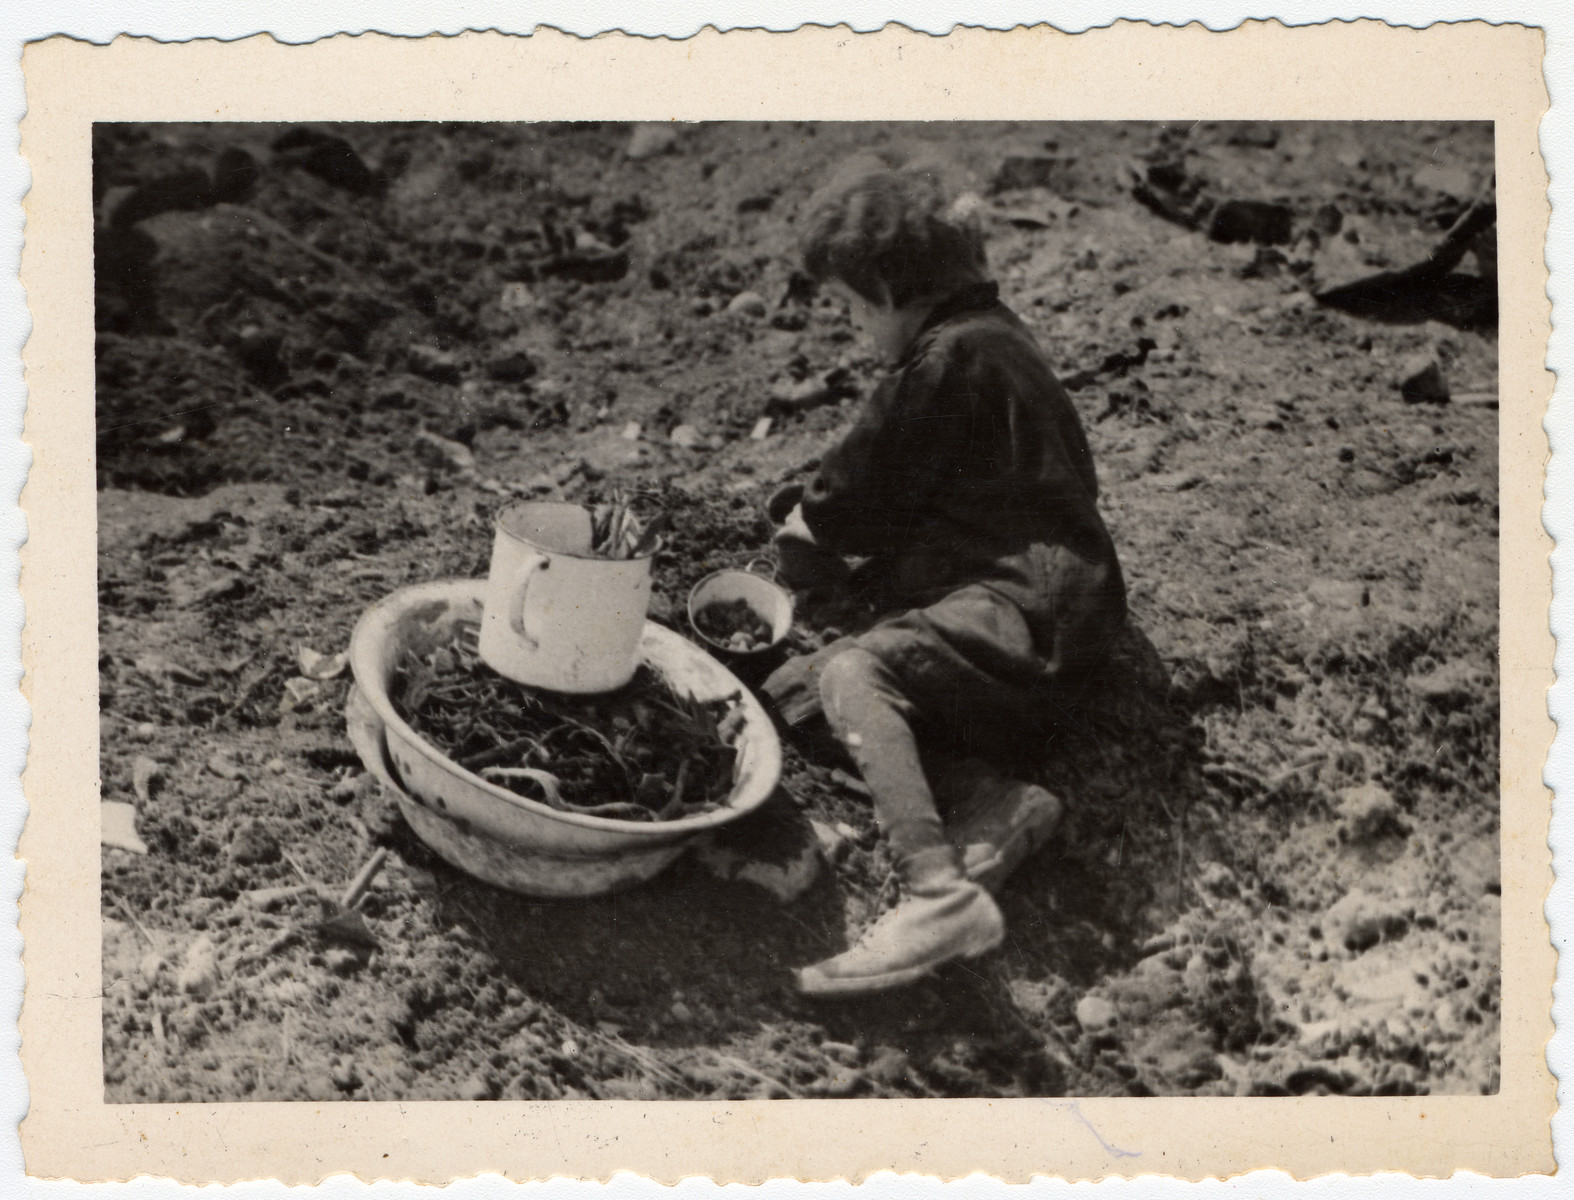 A child gathers scraps of food.